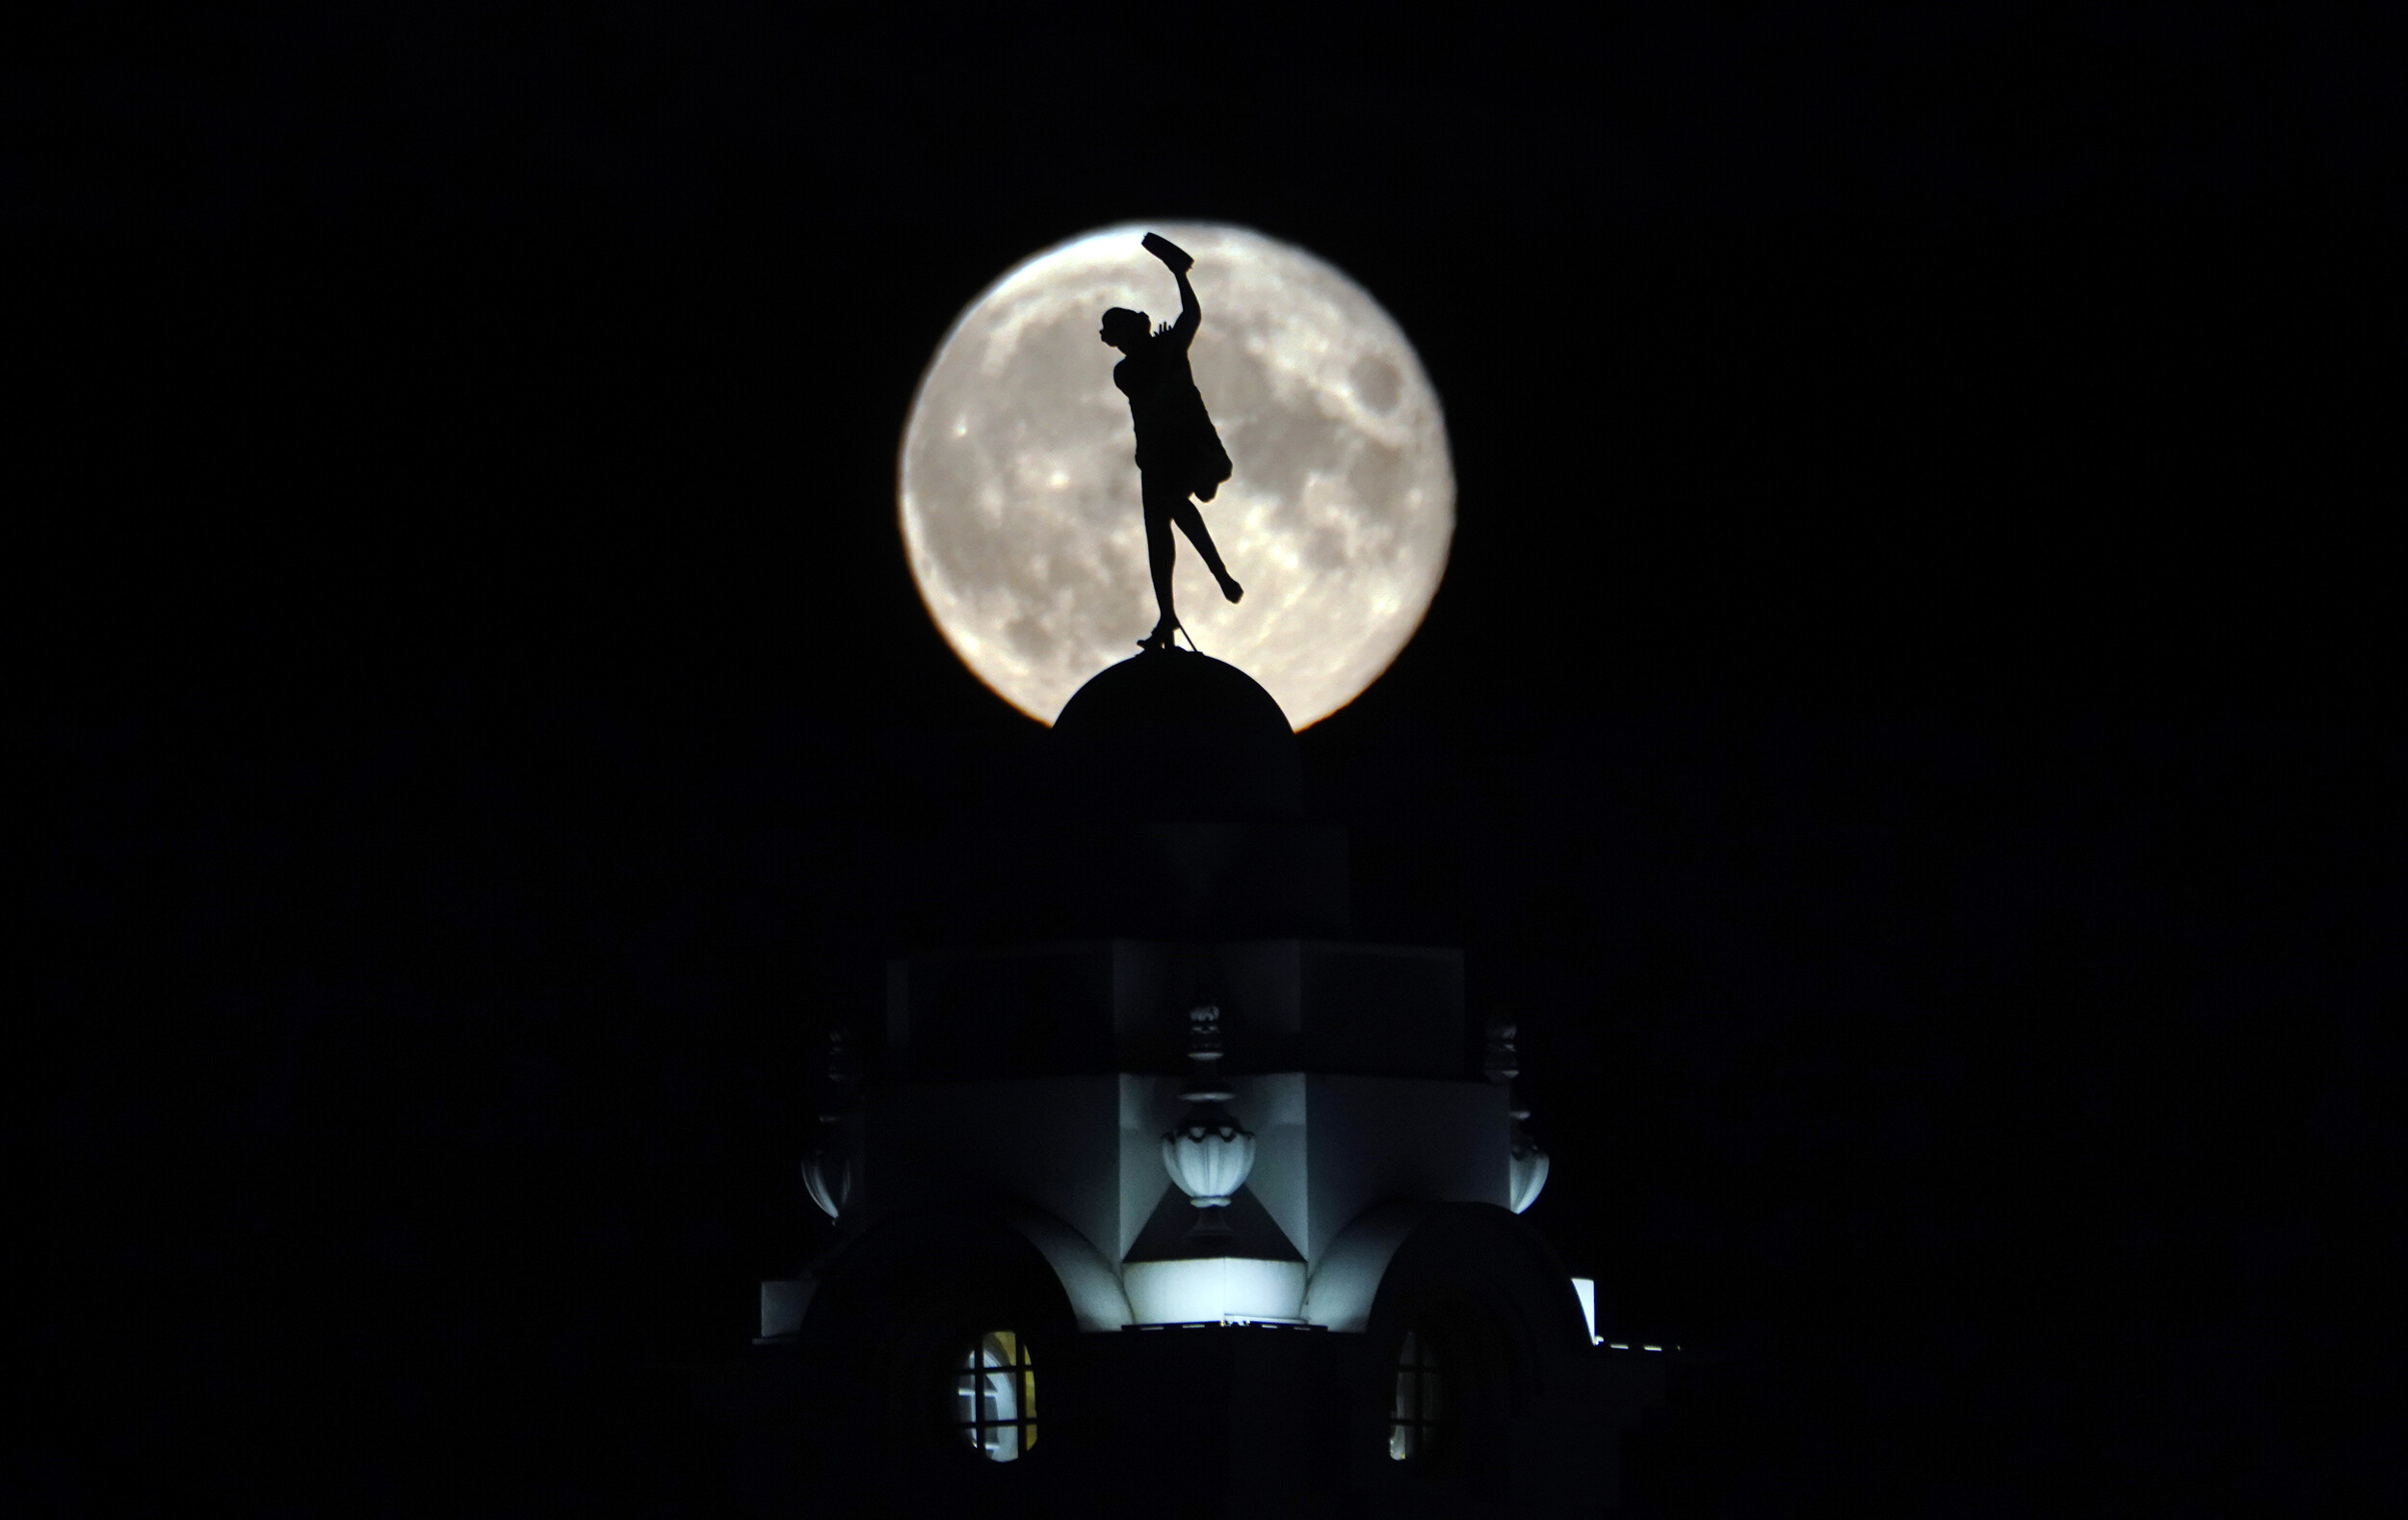 <i>Press Association/Sipa USA</i><br/>The full buck moon rises over a dancing lady on the Spanish City building in Whitley Bay